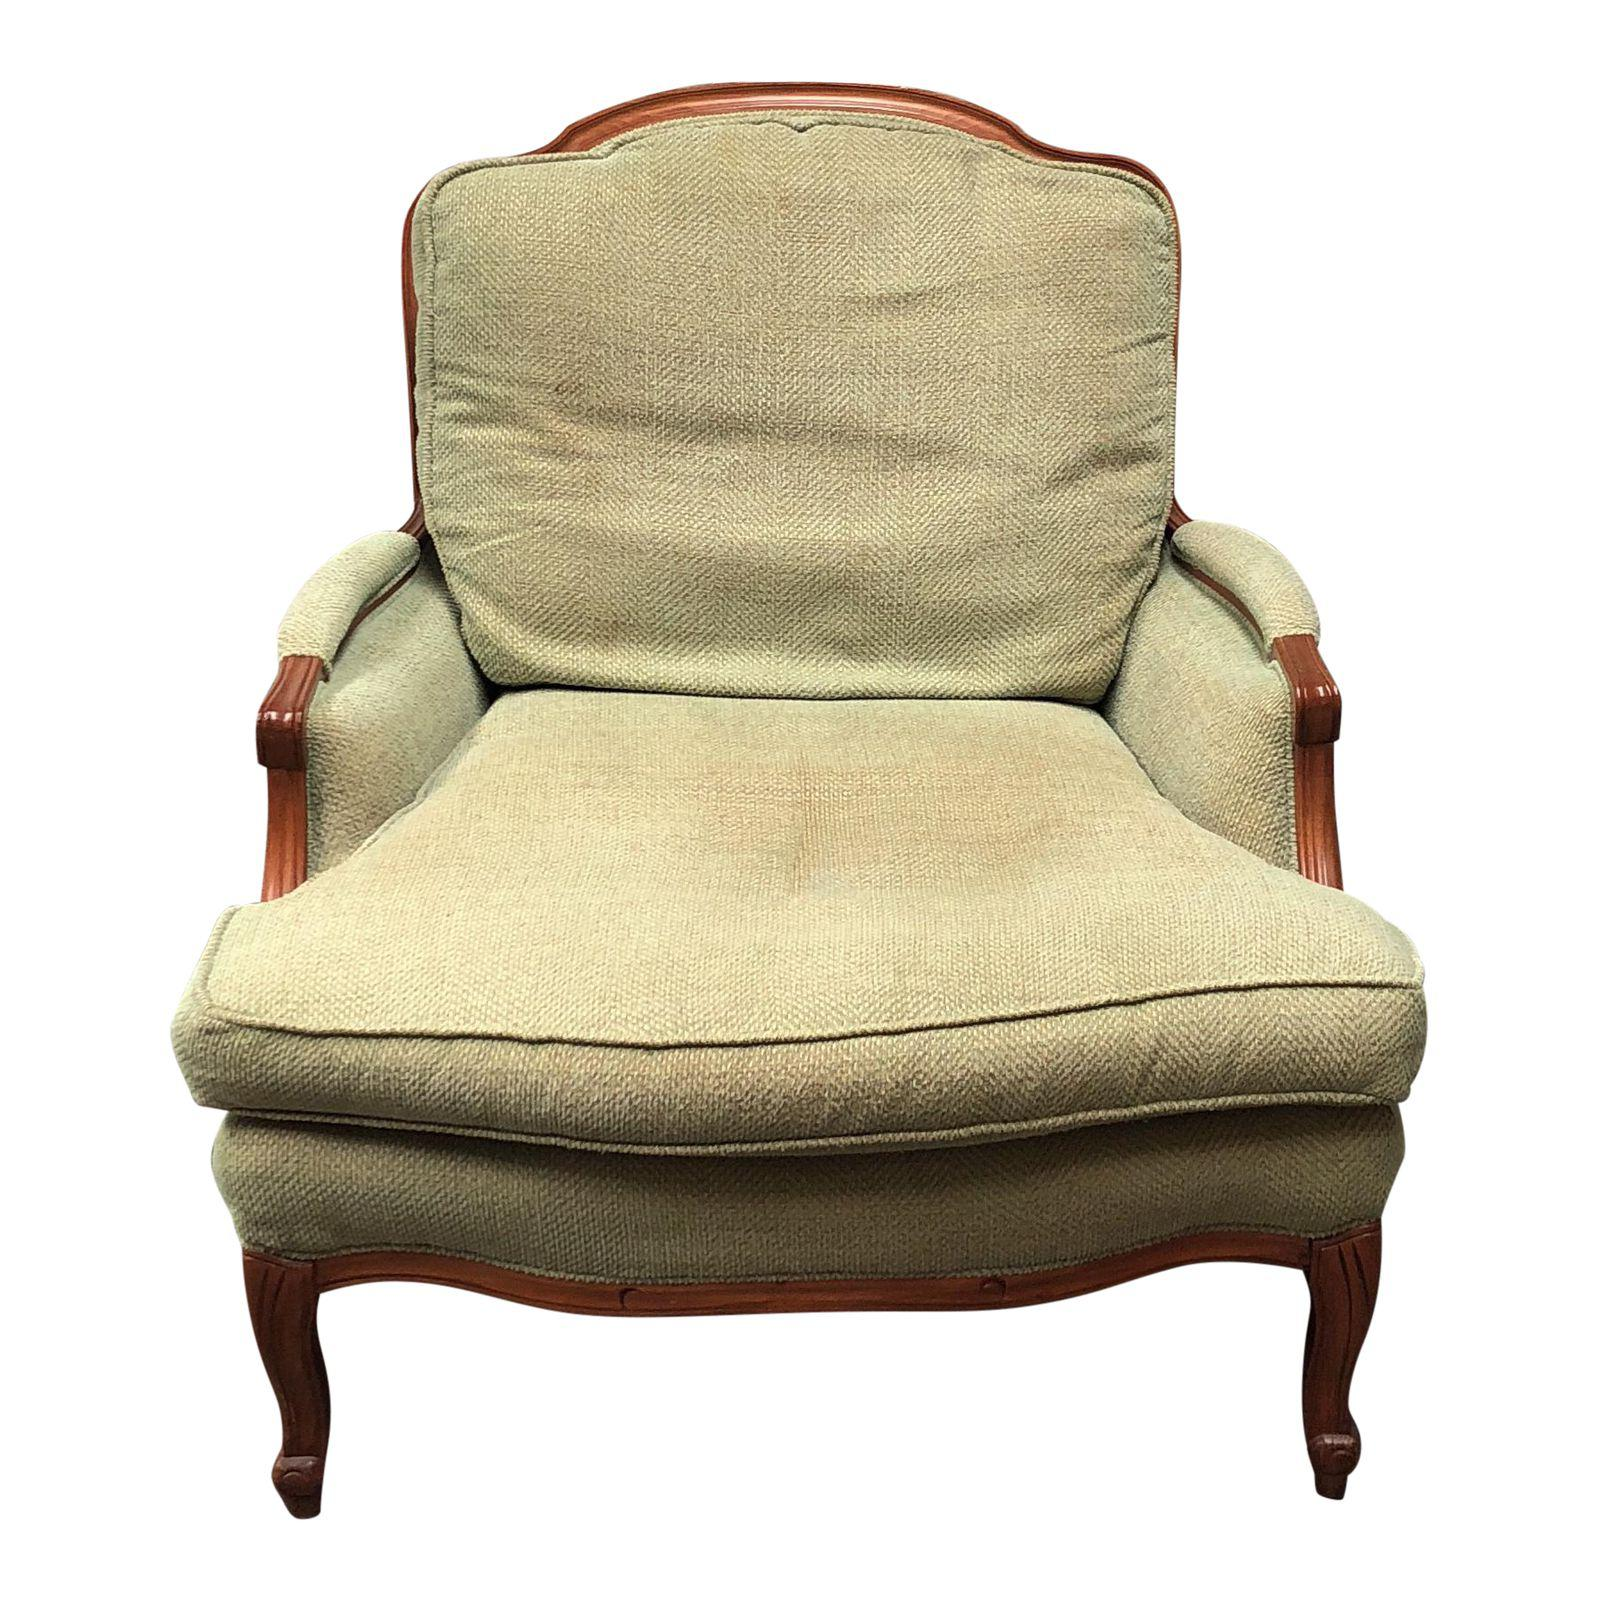 Sam Moore Chairs Sam Moore Bergere Style Armchair Design Plus Gallery